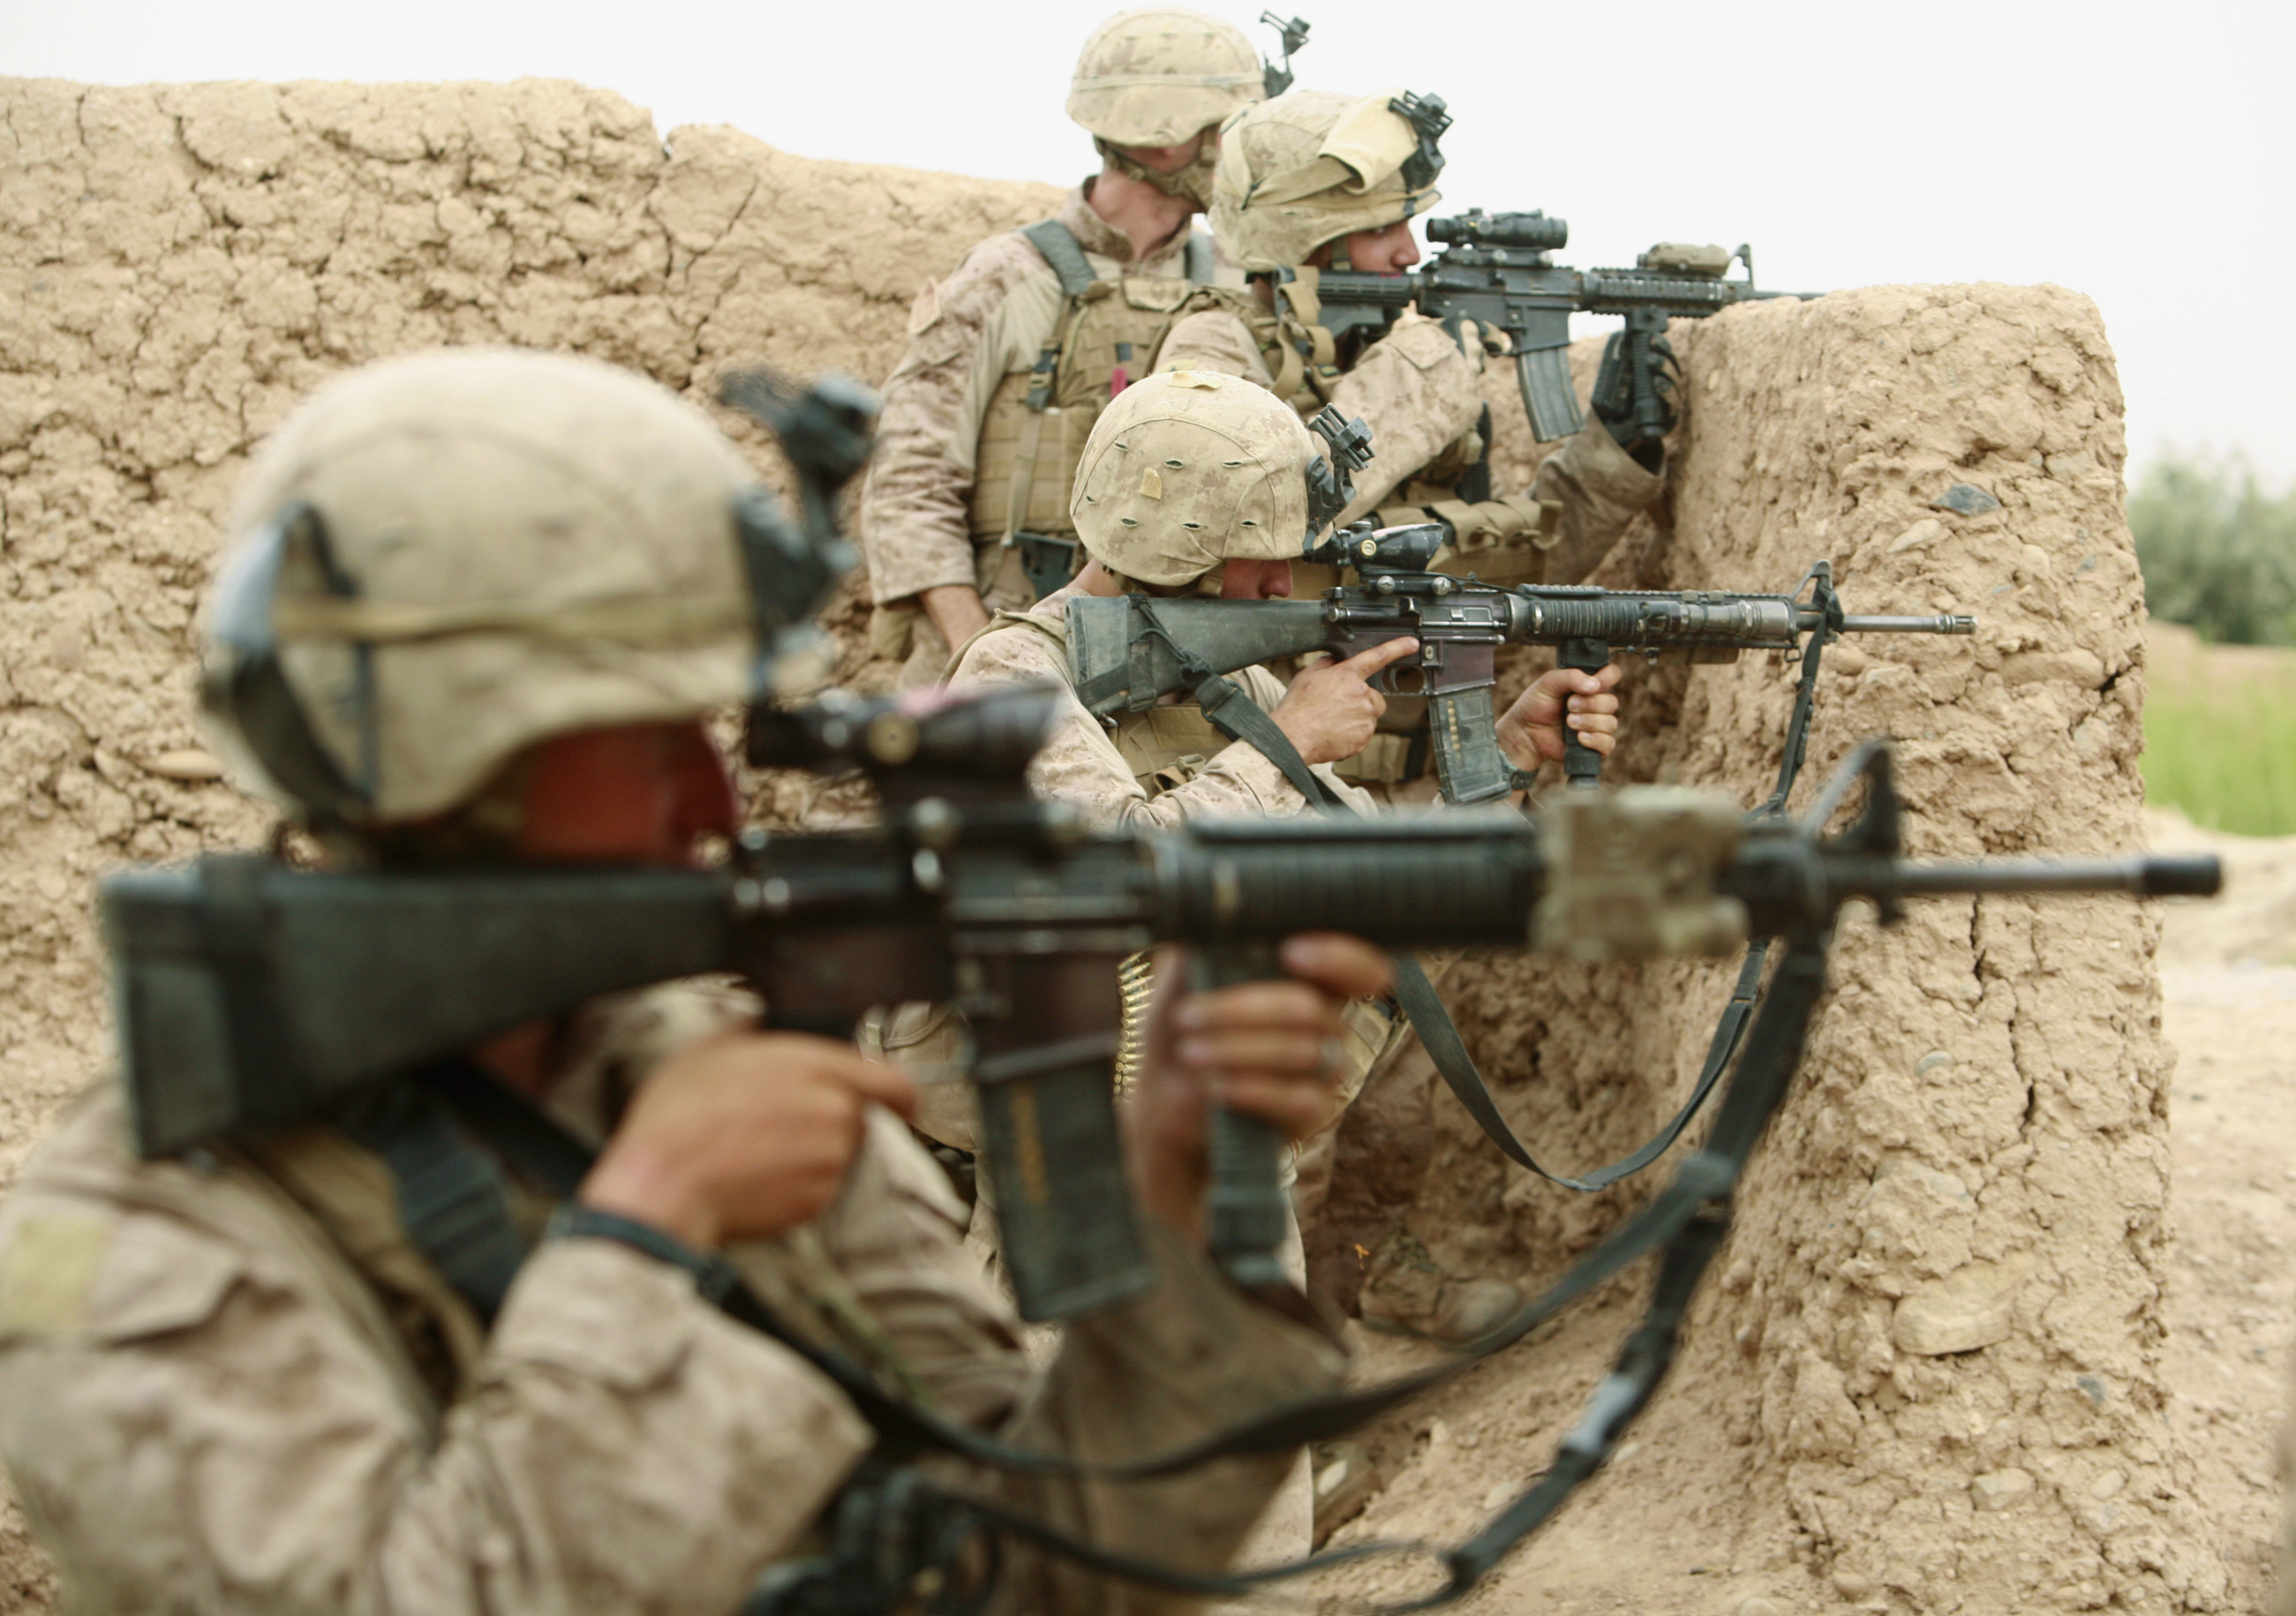 U.S. Marines from Lima Company 3rd Battalion, 6th Marines aim their weapons during a shootout with Taliban fighters in Karez-e-Sayyidi in the outskirts of Marjah district